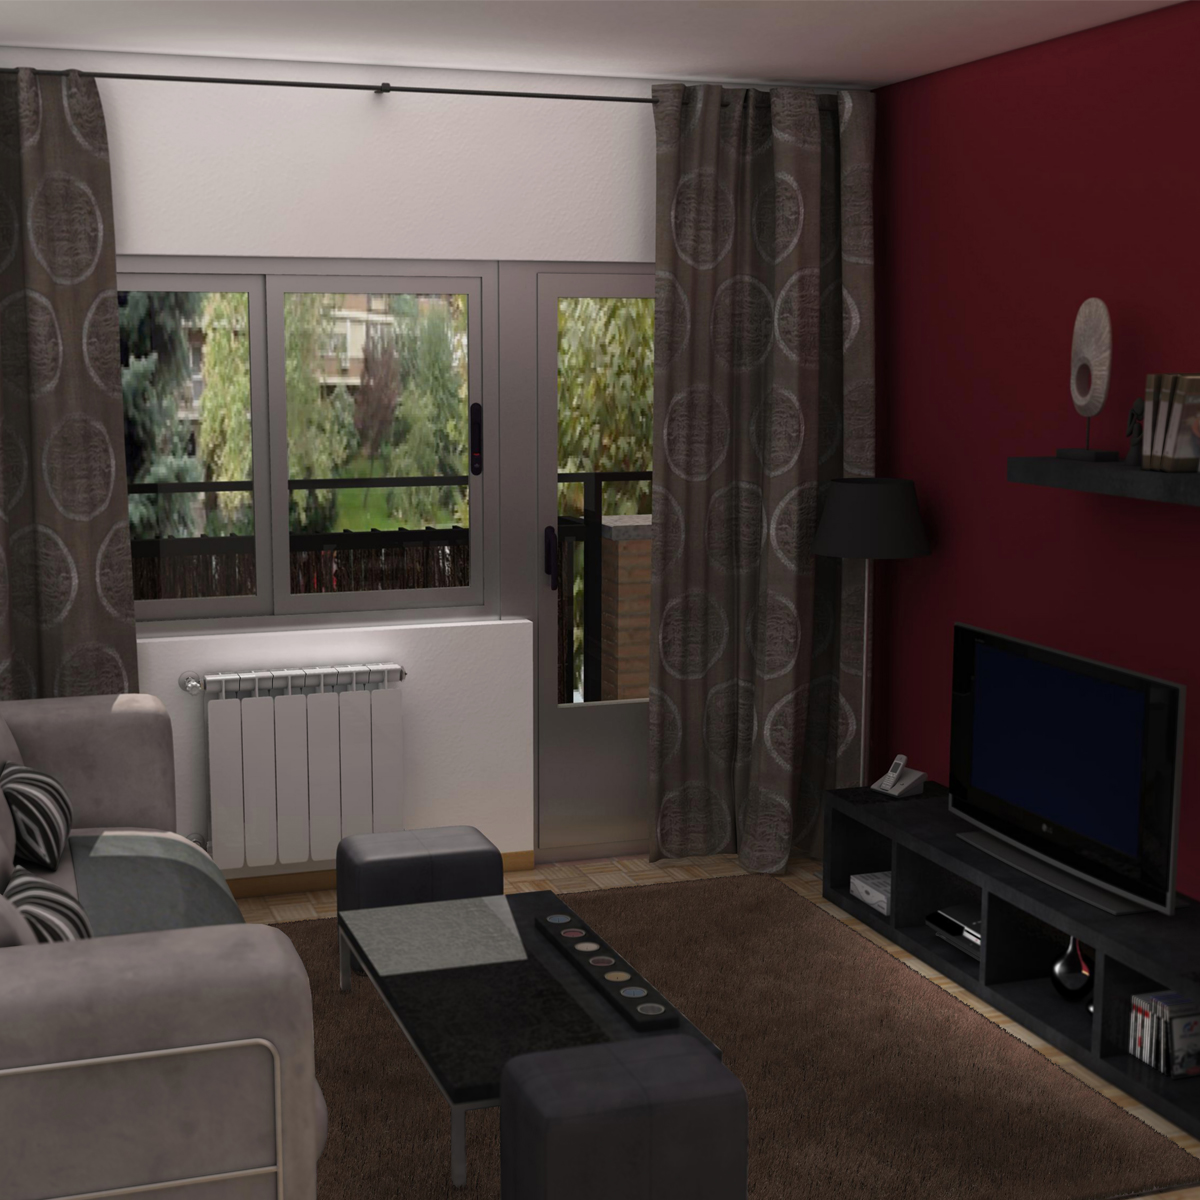 Living room 3d model interior light 3ds max fbx c4d ma mb for Living room 3d model